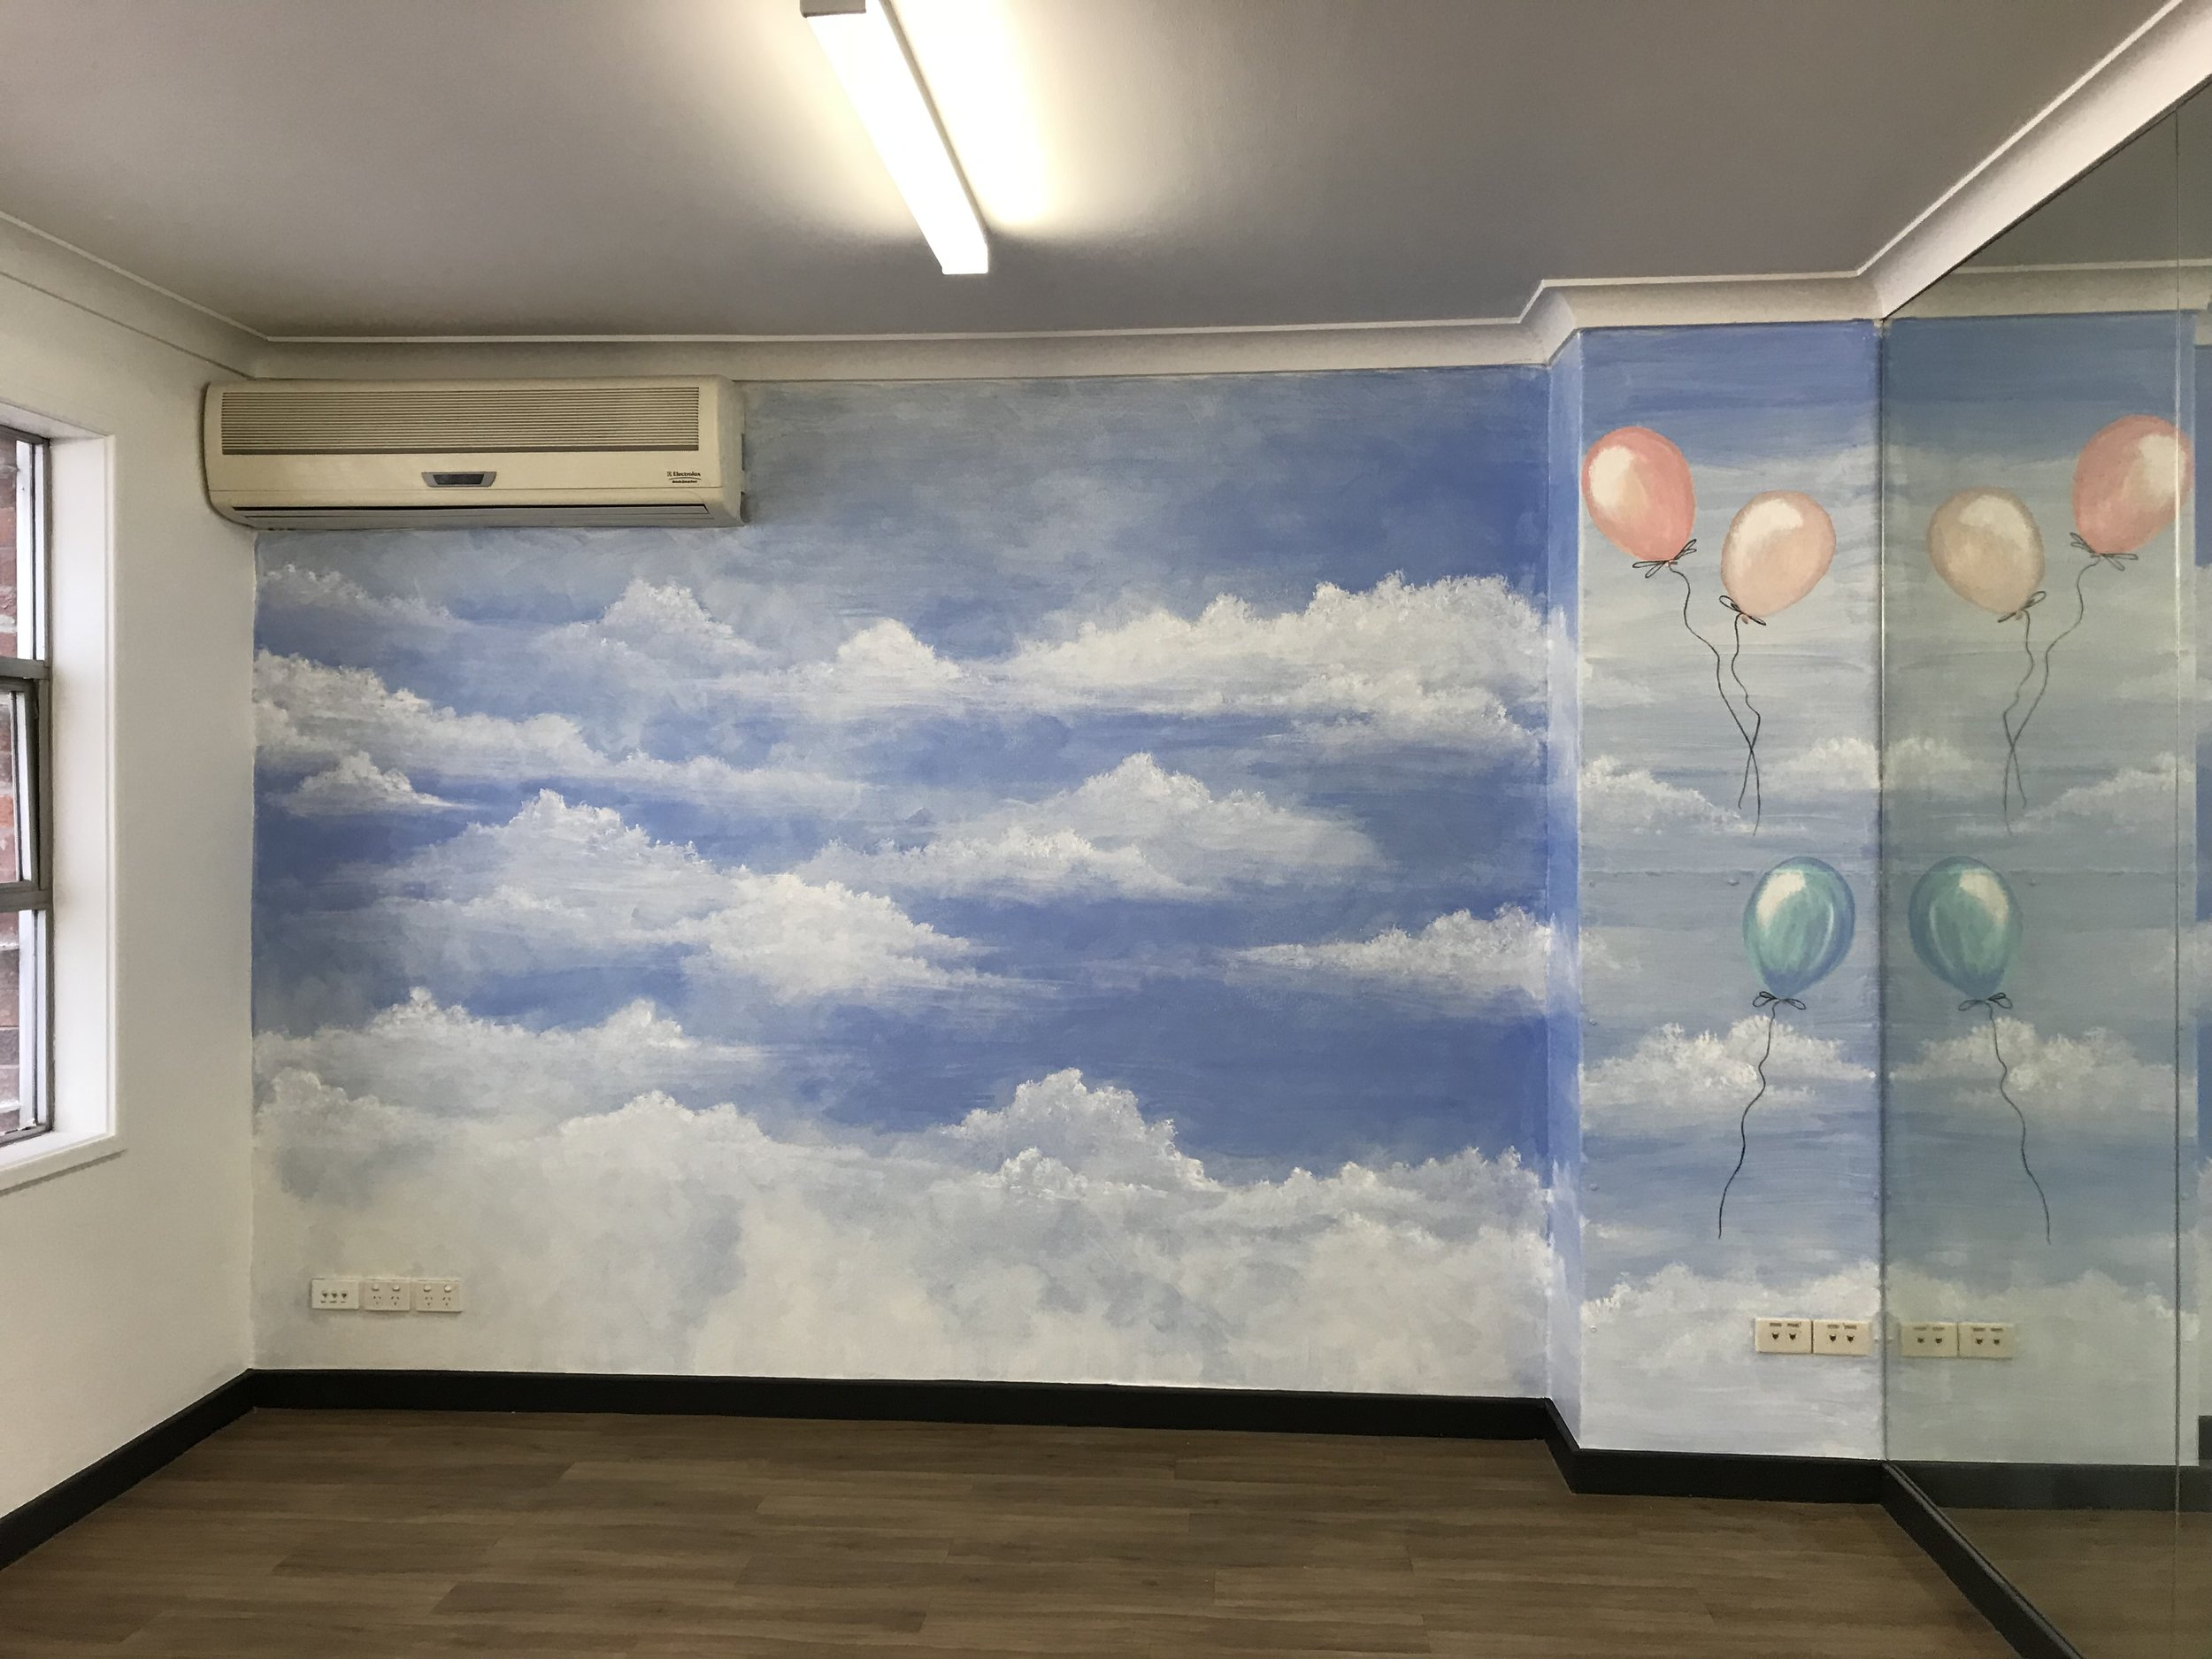 'Dreamy Clouds' to get the imagination firing and keep the mood calm. (Gym creche)